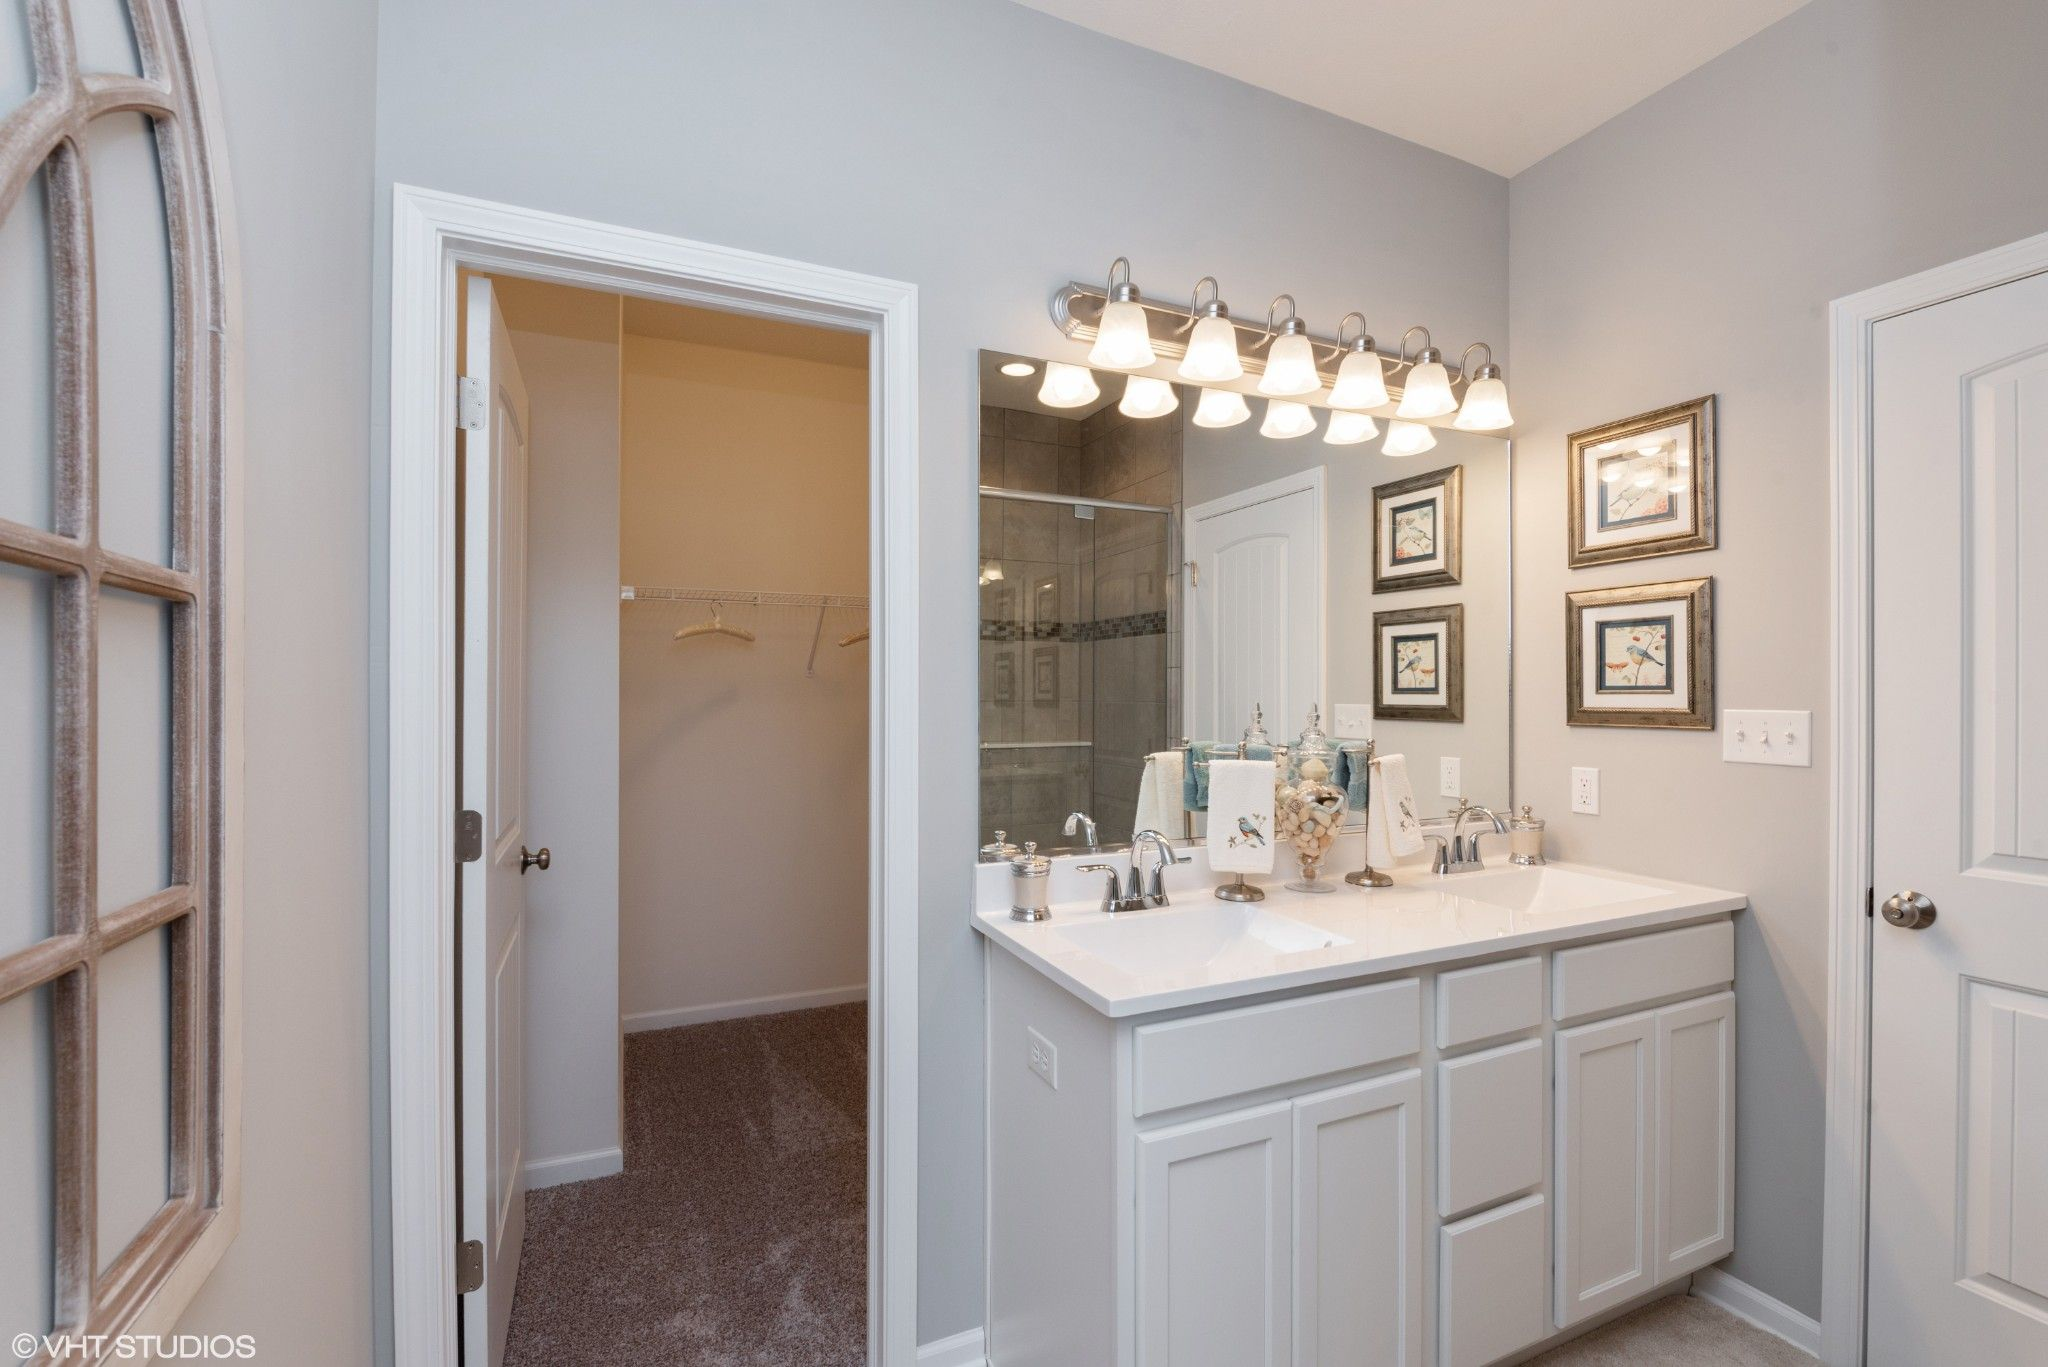 Bathroom featured in the Milan By Olthof Homes in Gary, IN